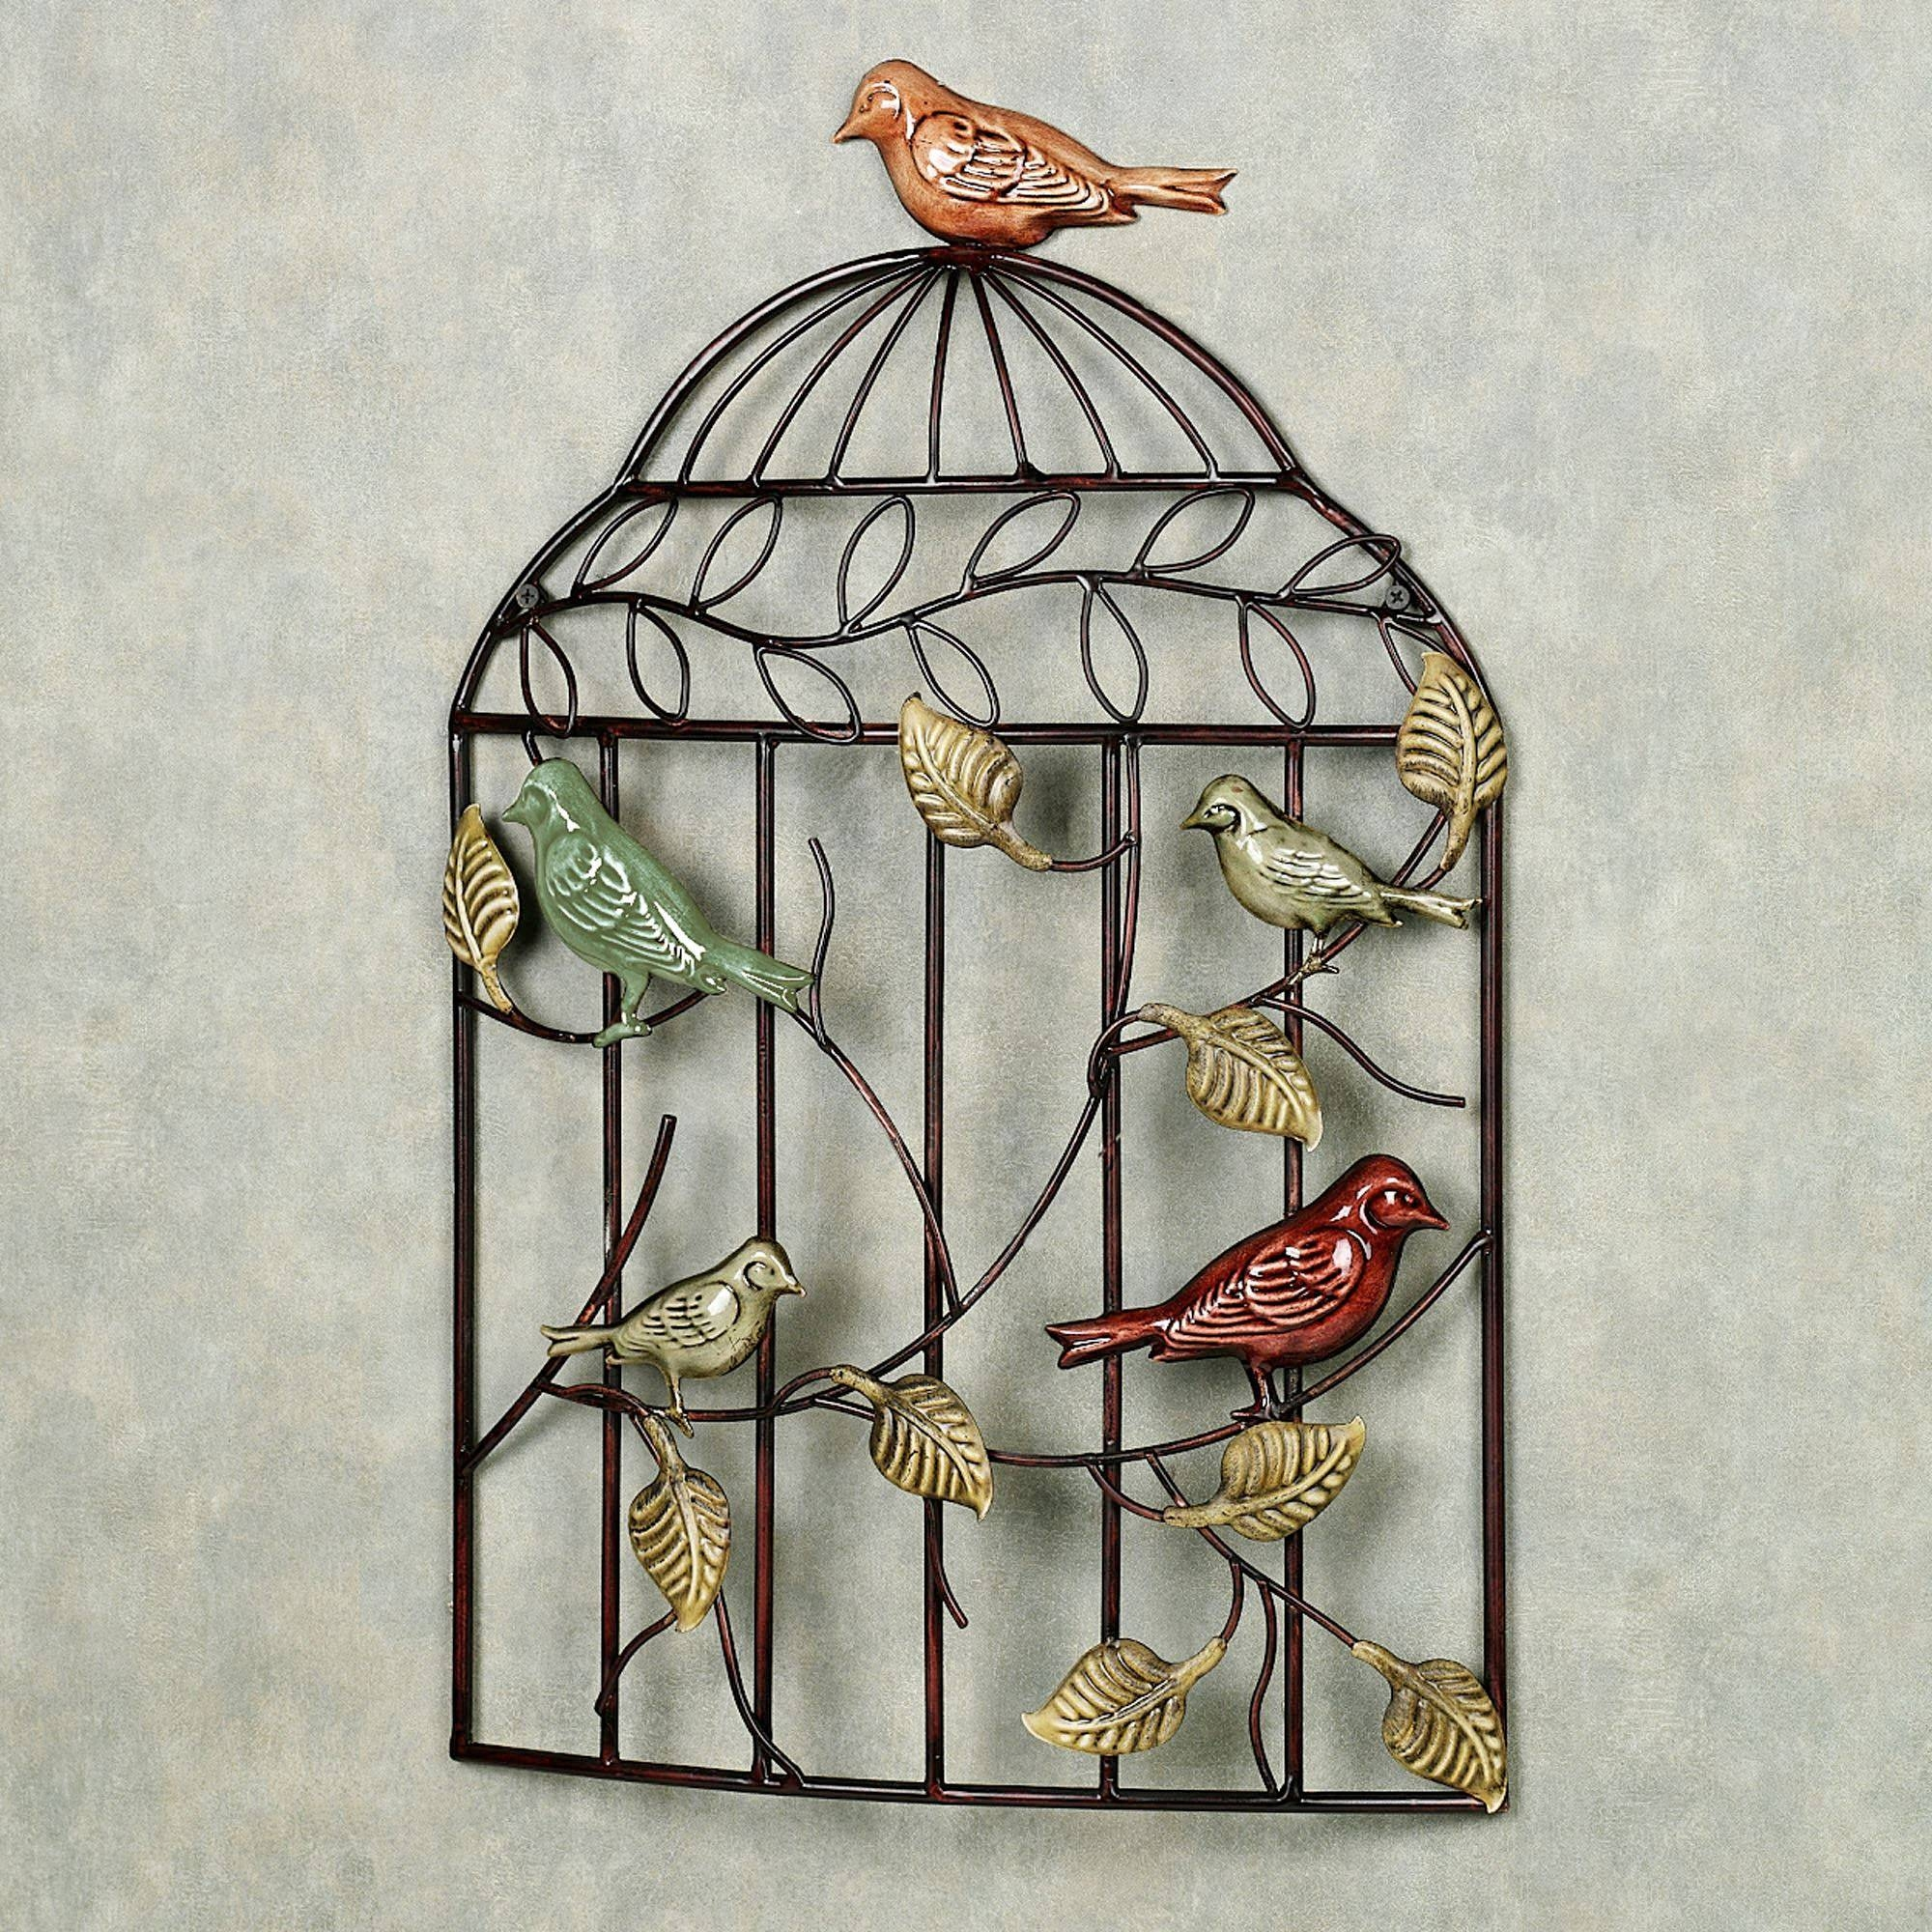 Bird Sanctuary Cage Metal Wall Art Within Current Bird Metal Wall Art (View 3 of 20)